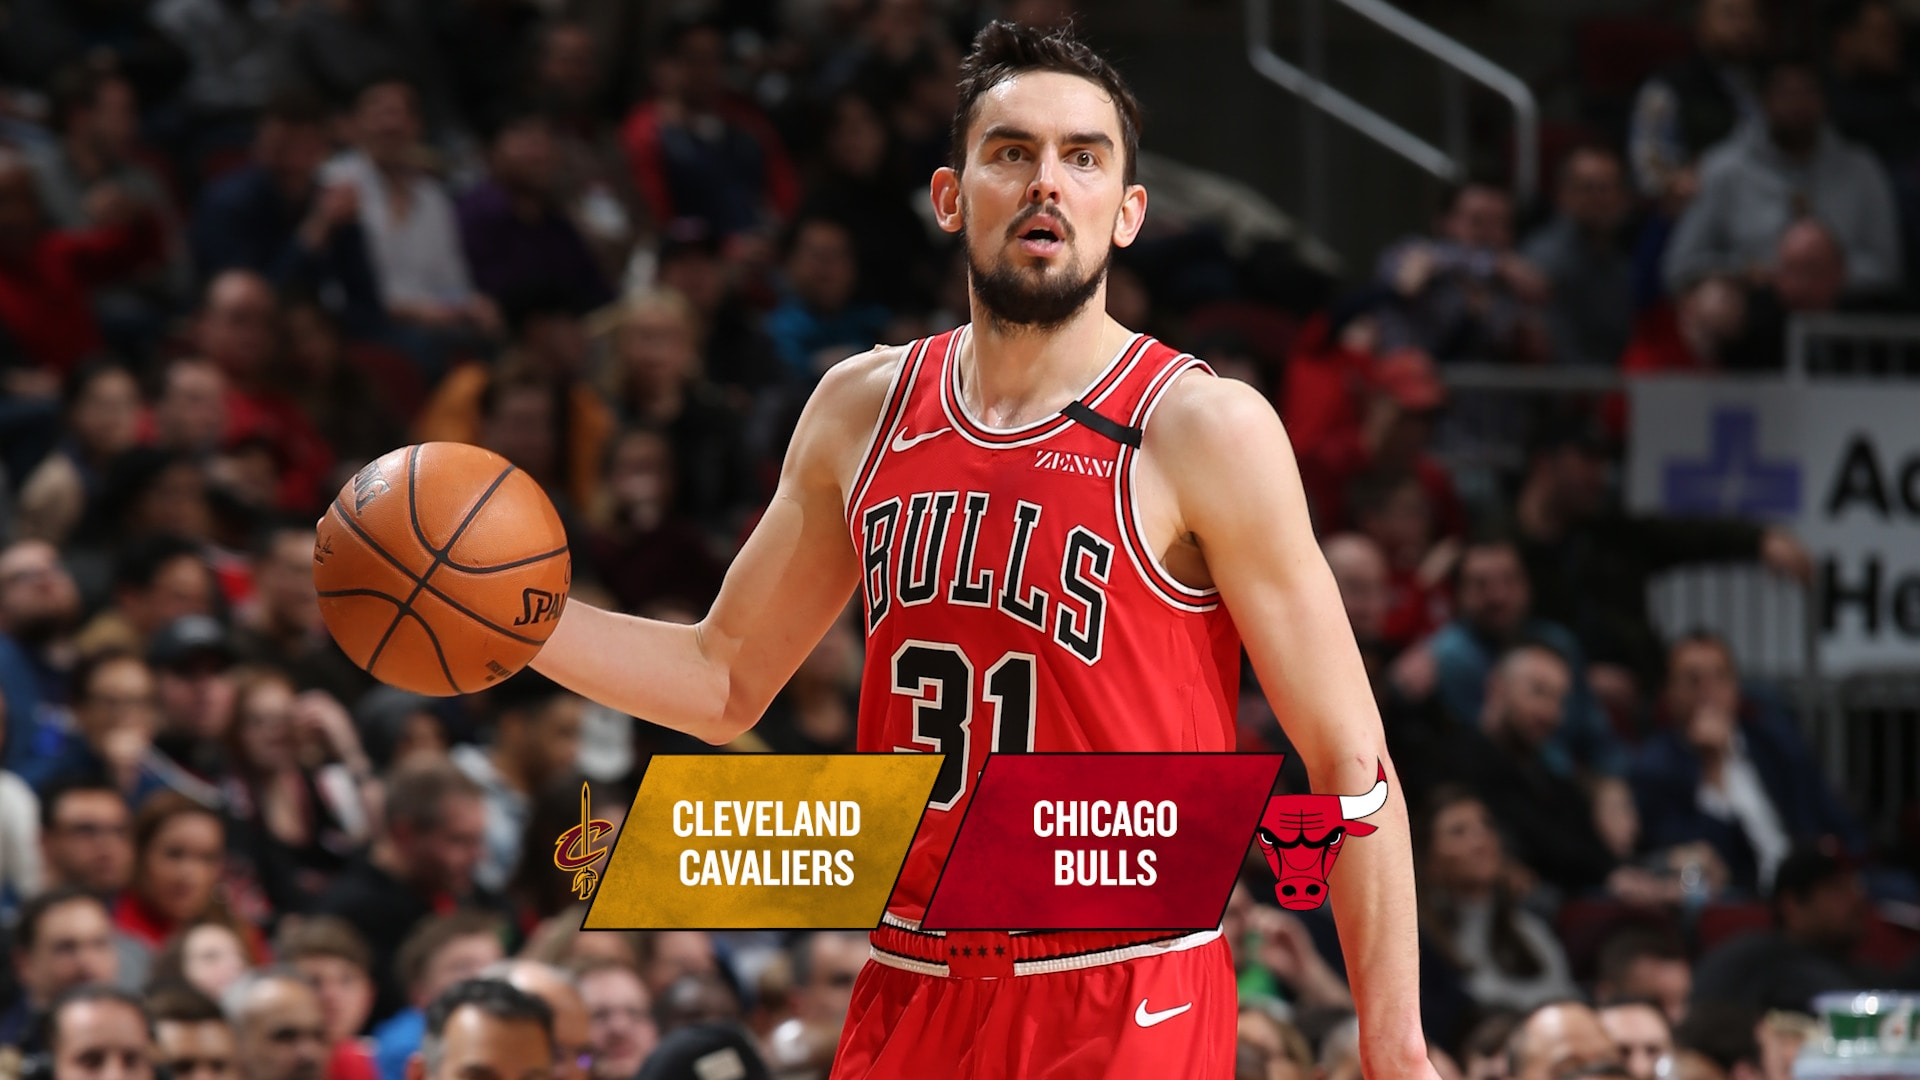 BullsTV Preview: Bulls vs. Cavaliers - 1.18.20